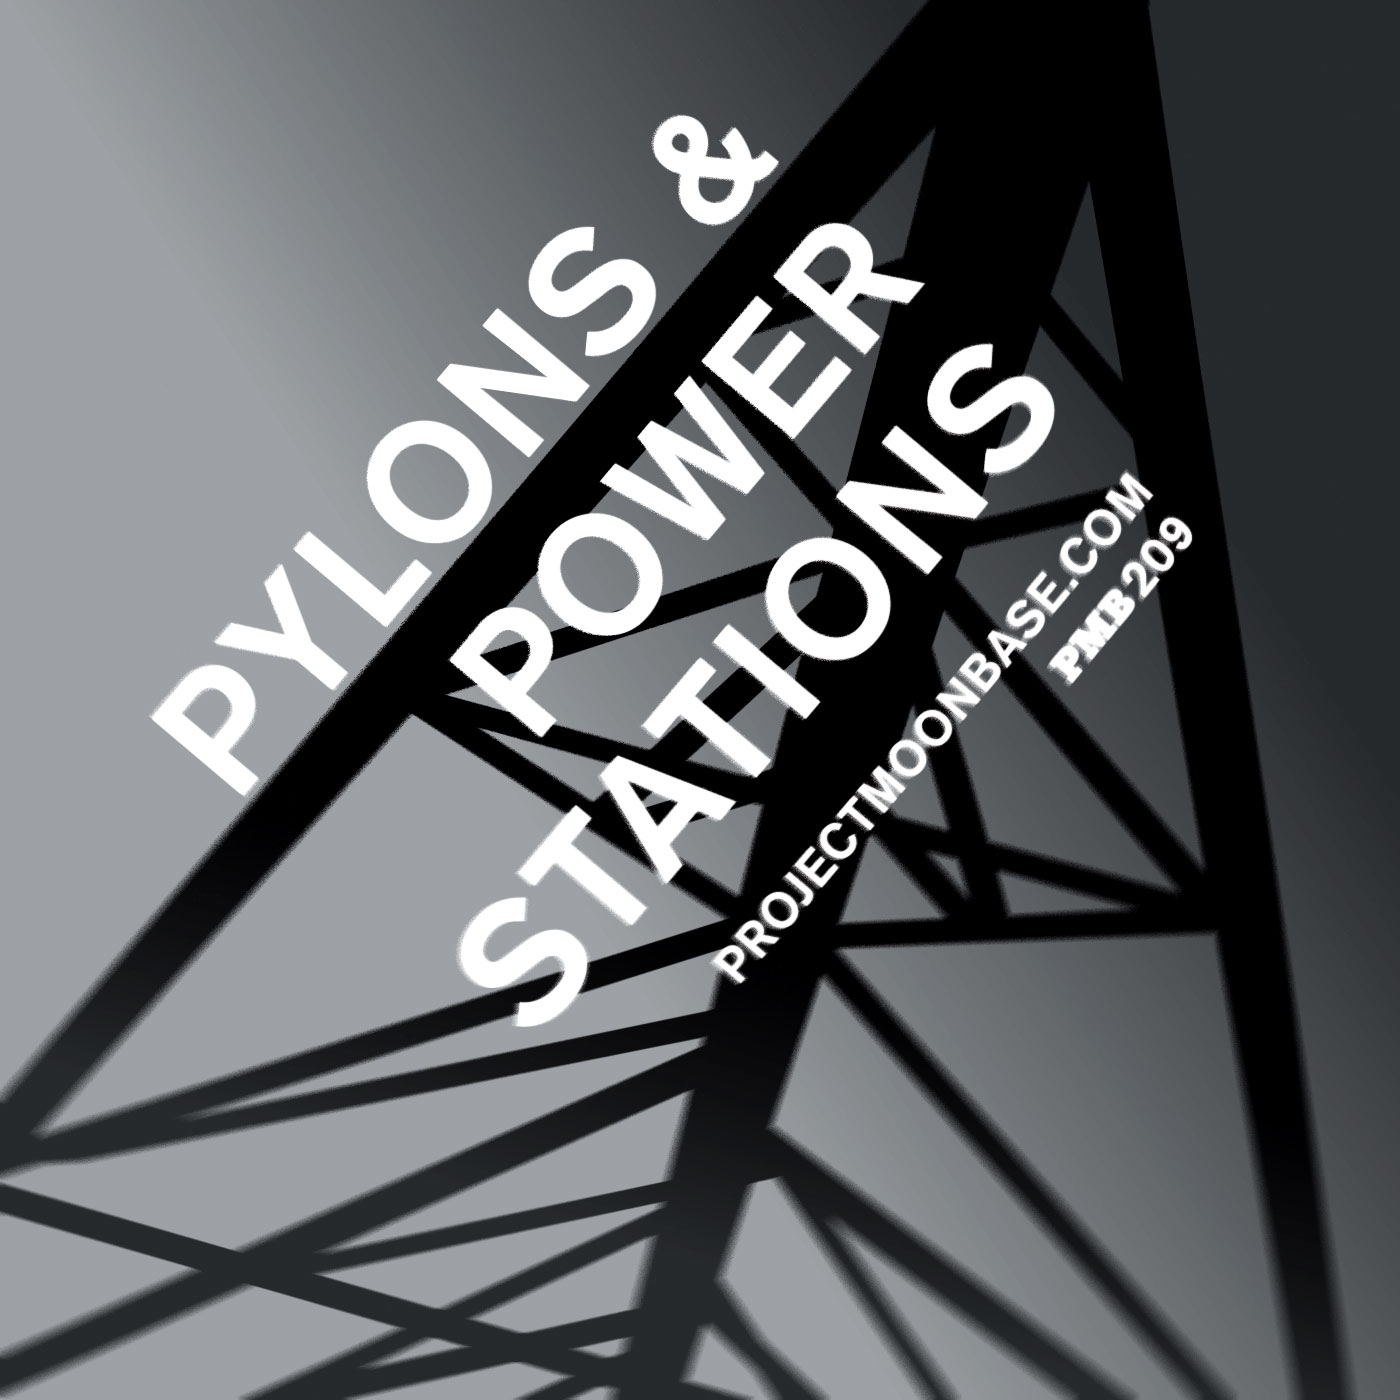 PMB209: Pylons and Power Stations